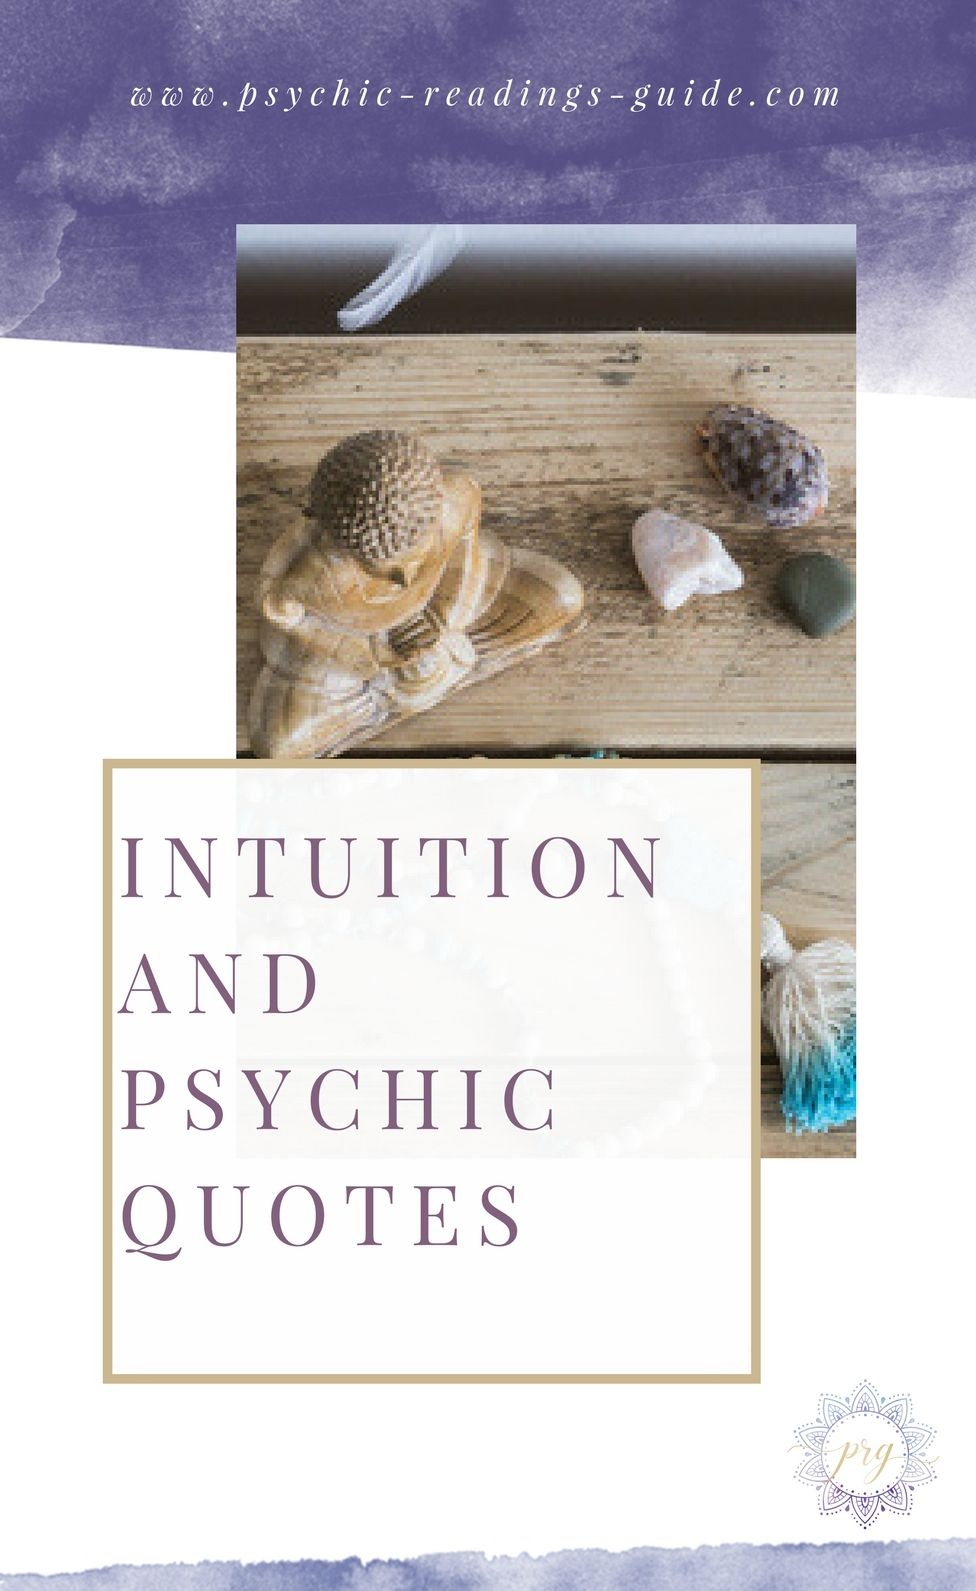 Intuition And Psychic Quotes Best Of Psychic Readings Guide